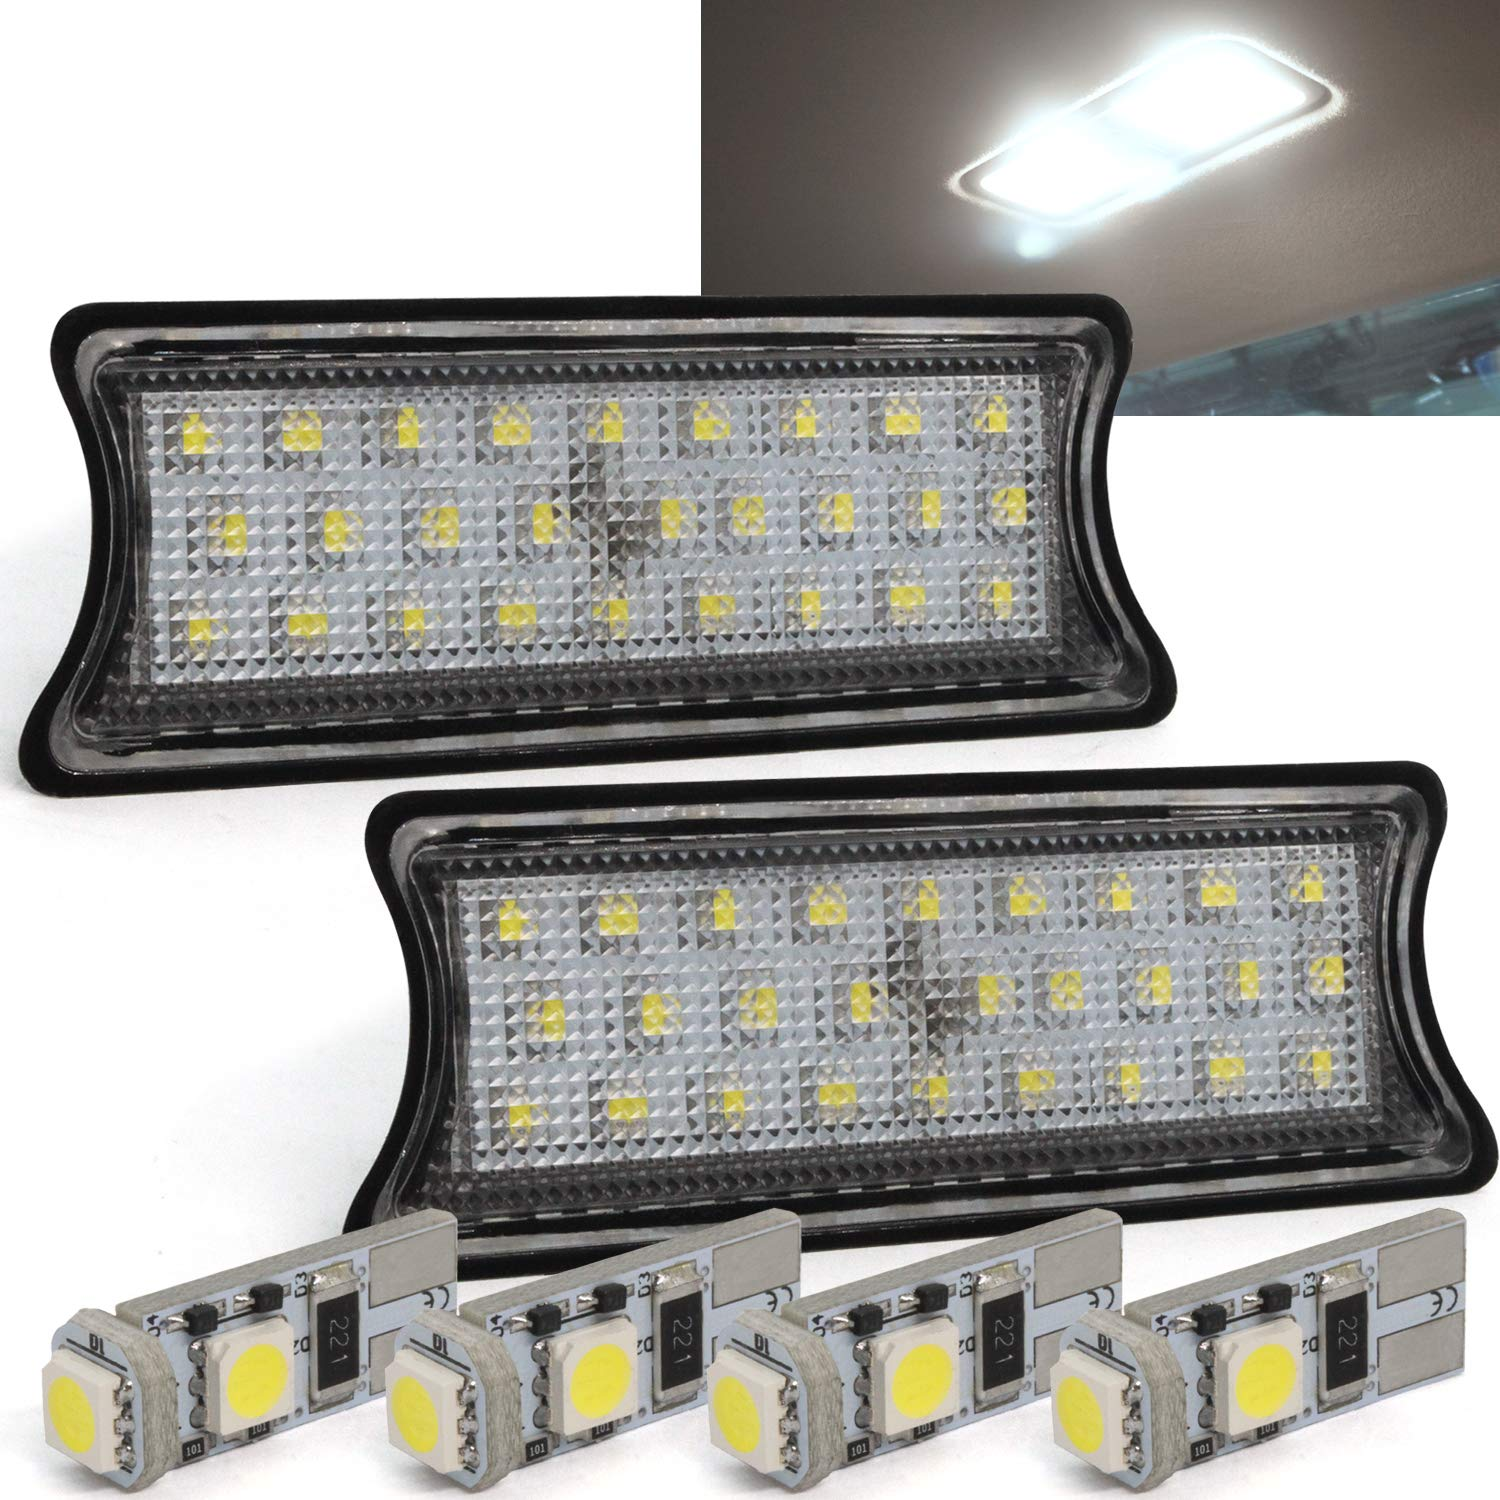 LED License Plate Lamps,YuanGu 18 LED Xenon White Rear License Tag Lights Rear Number Plate Lamp CE Mark CANBUS Free Error Fit for F//ord Fiesta Focus Mondeo Kuga Galaxy